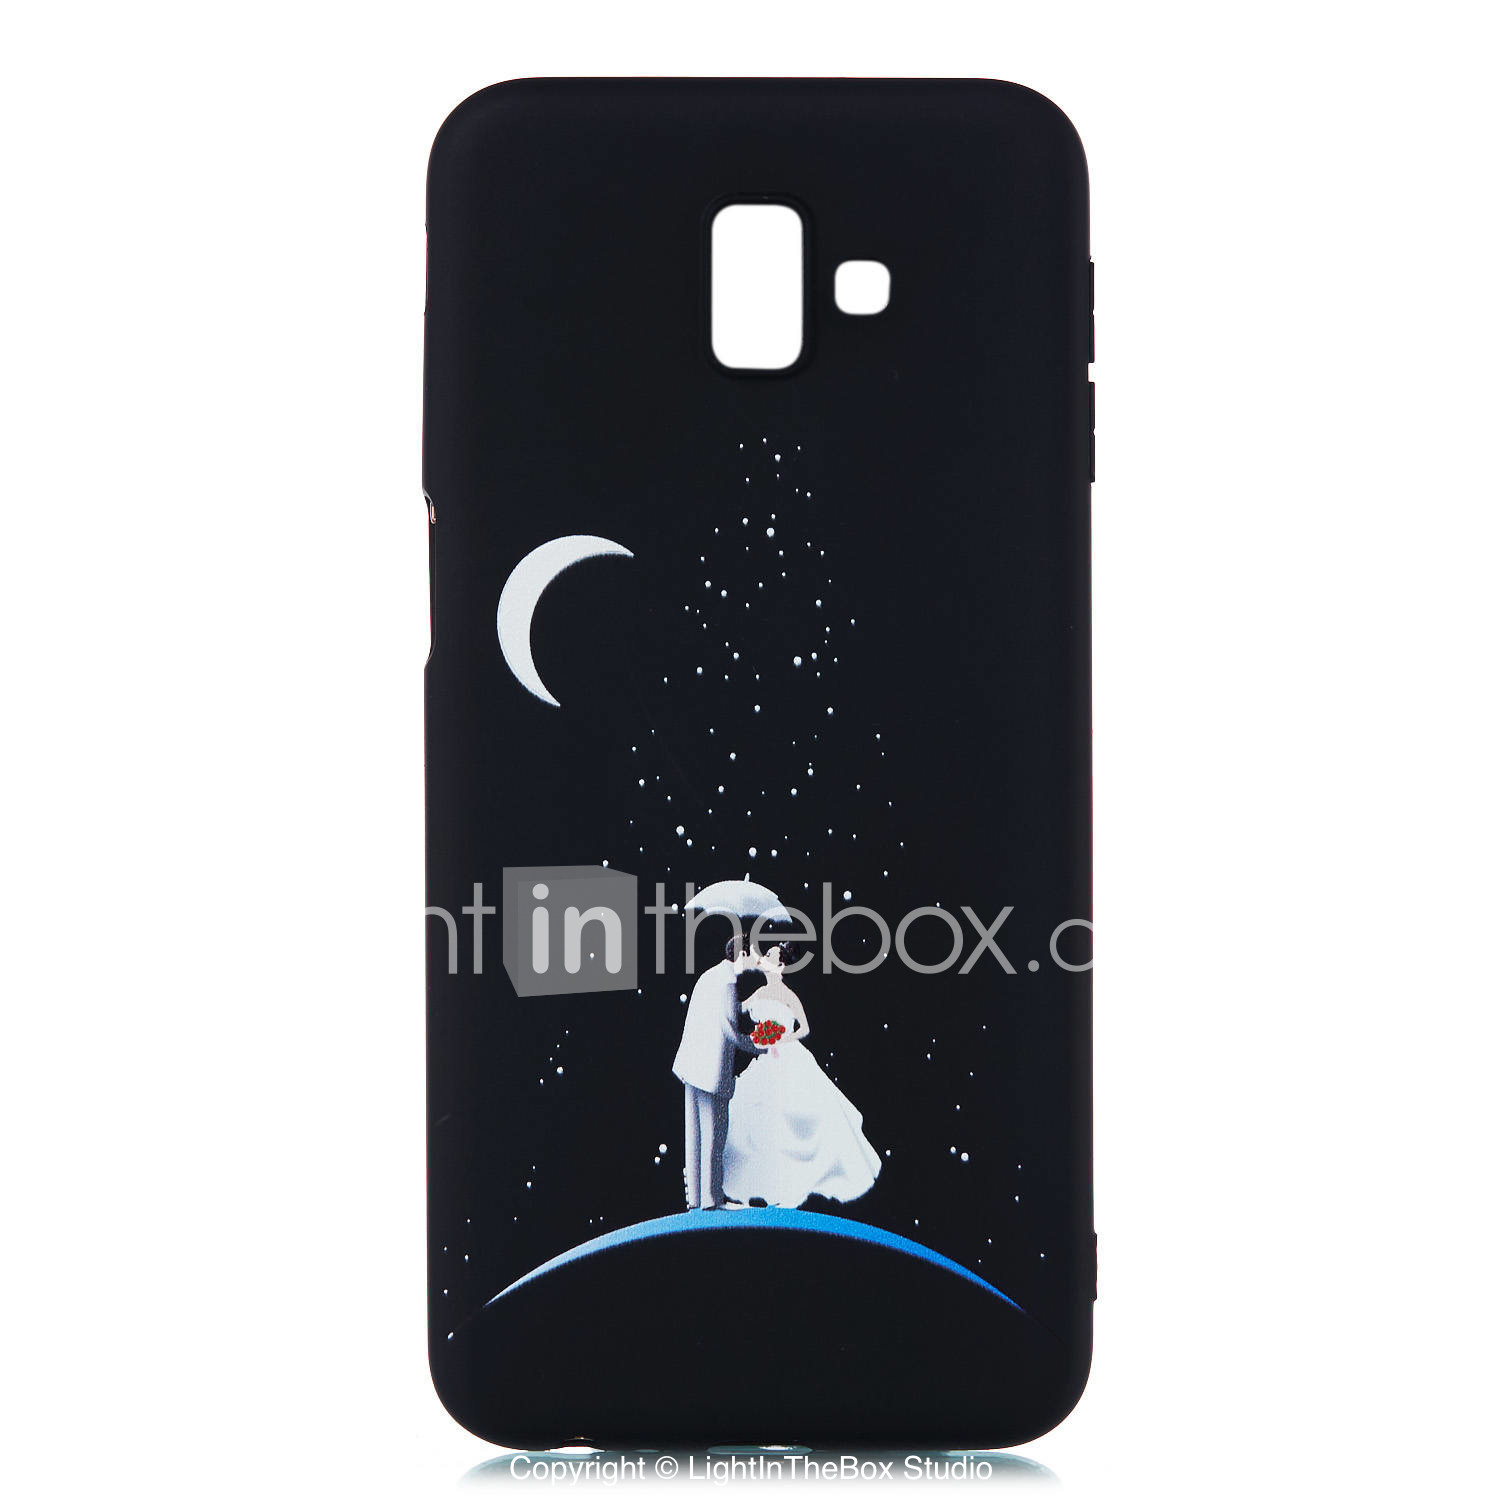 Case For Samsung Galaxy J8 (2018) / J7 Prime / J7 (2017) Frosted